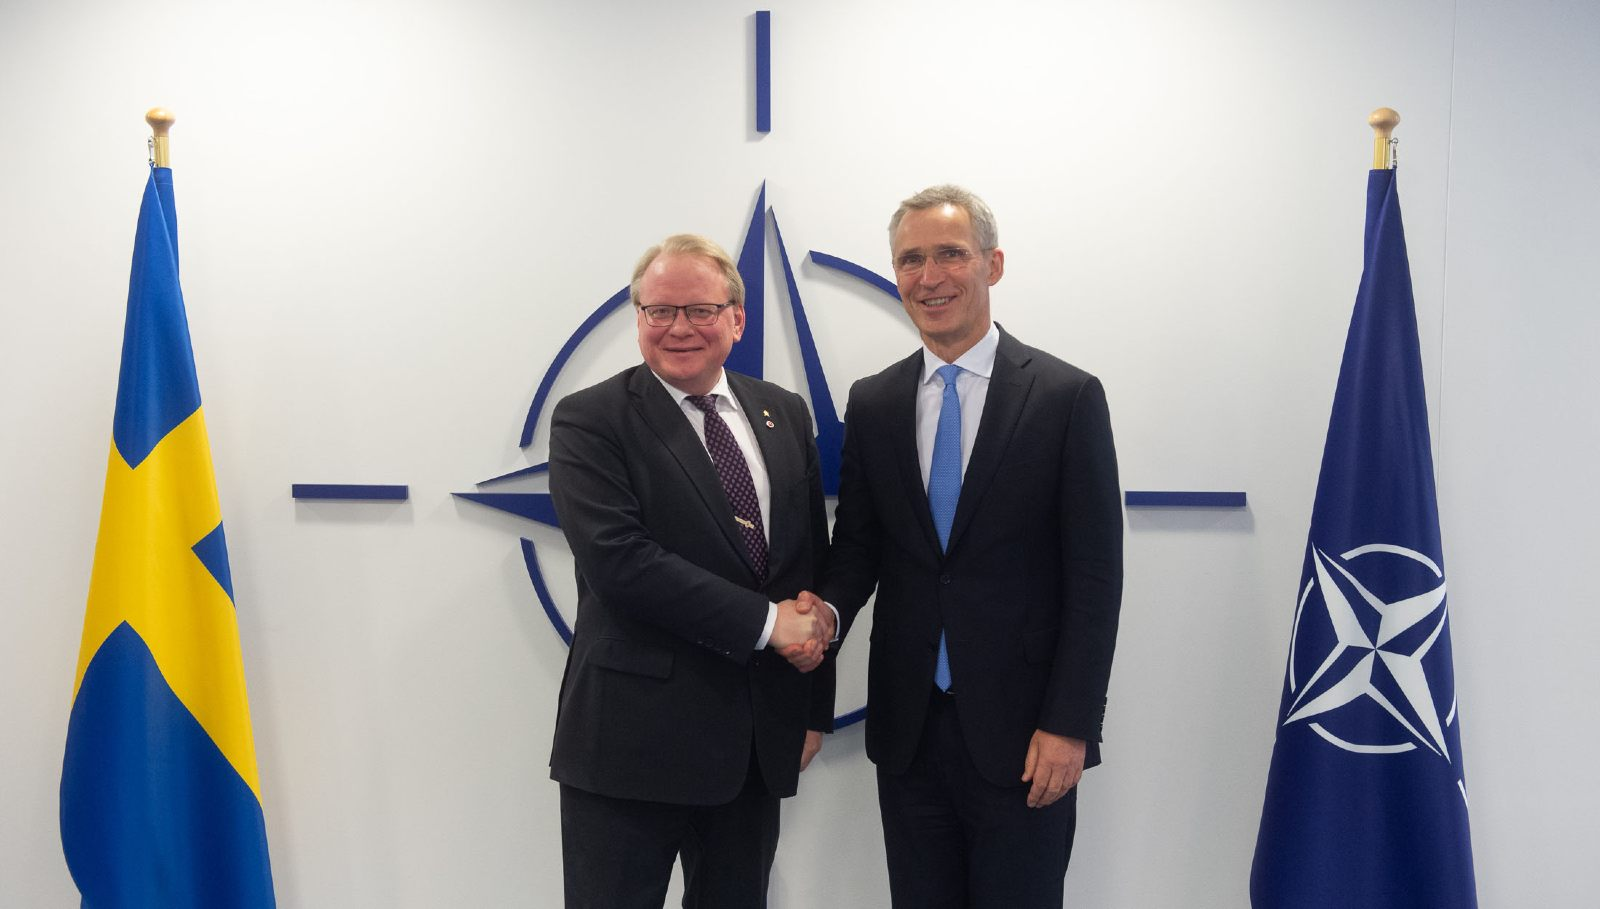 Left to right: Peter Hultqvist (Minister of Defence, Sweden) with NATO Secretary General Jens Stoltenberg